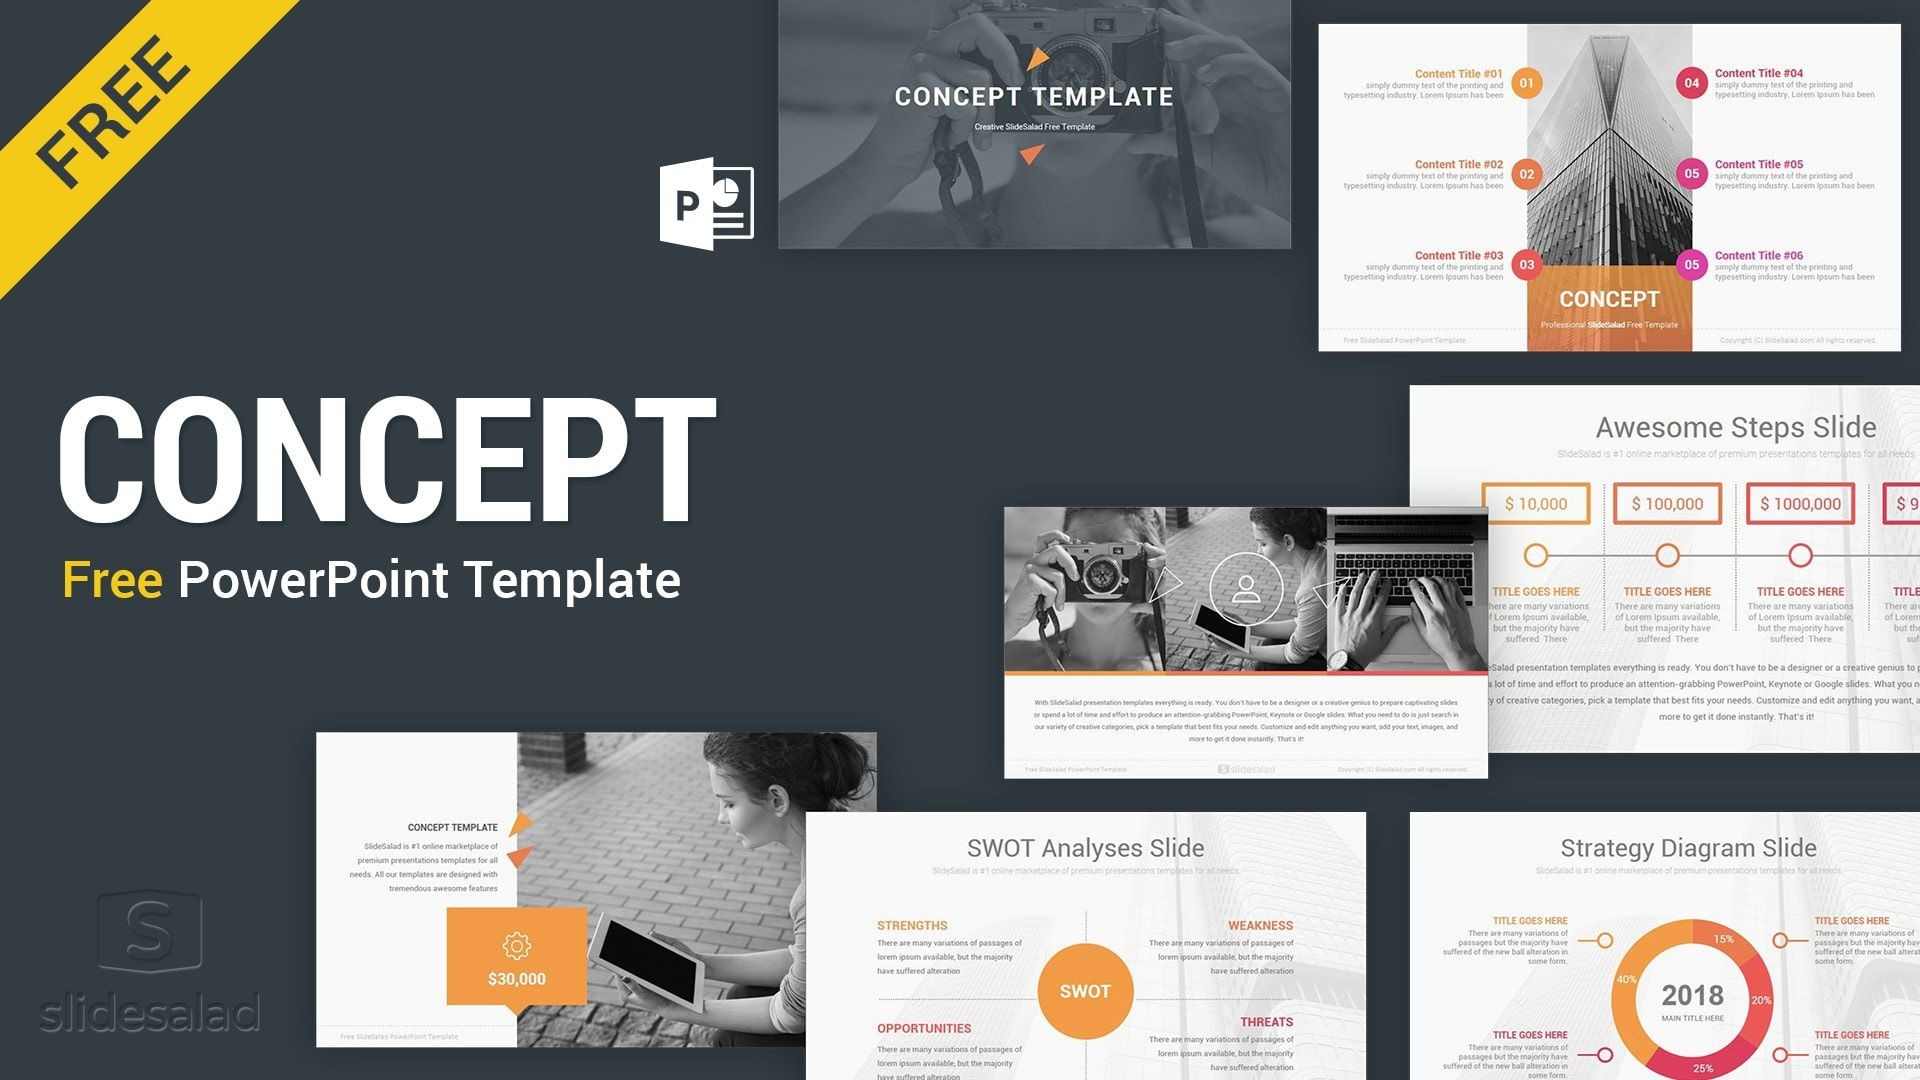 003 Exceptional Free Powerpoint Template Design Highest Clarity  For Student Food Busines1920